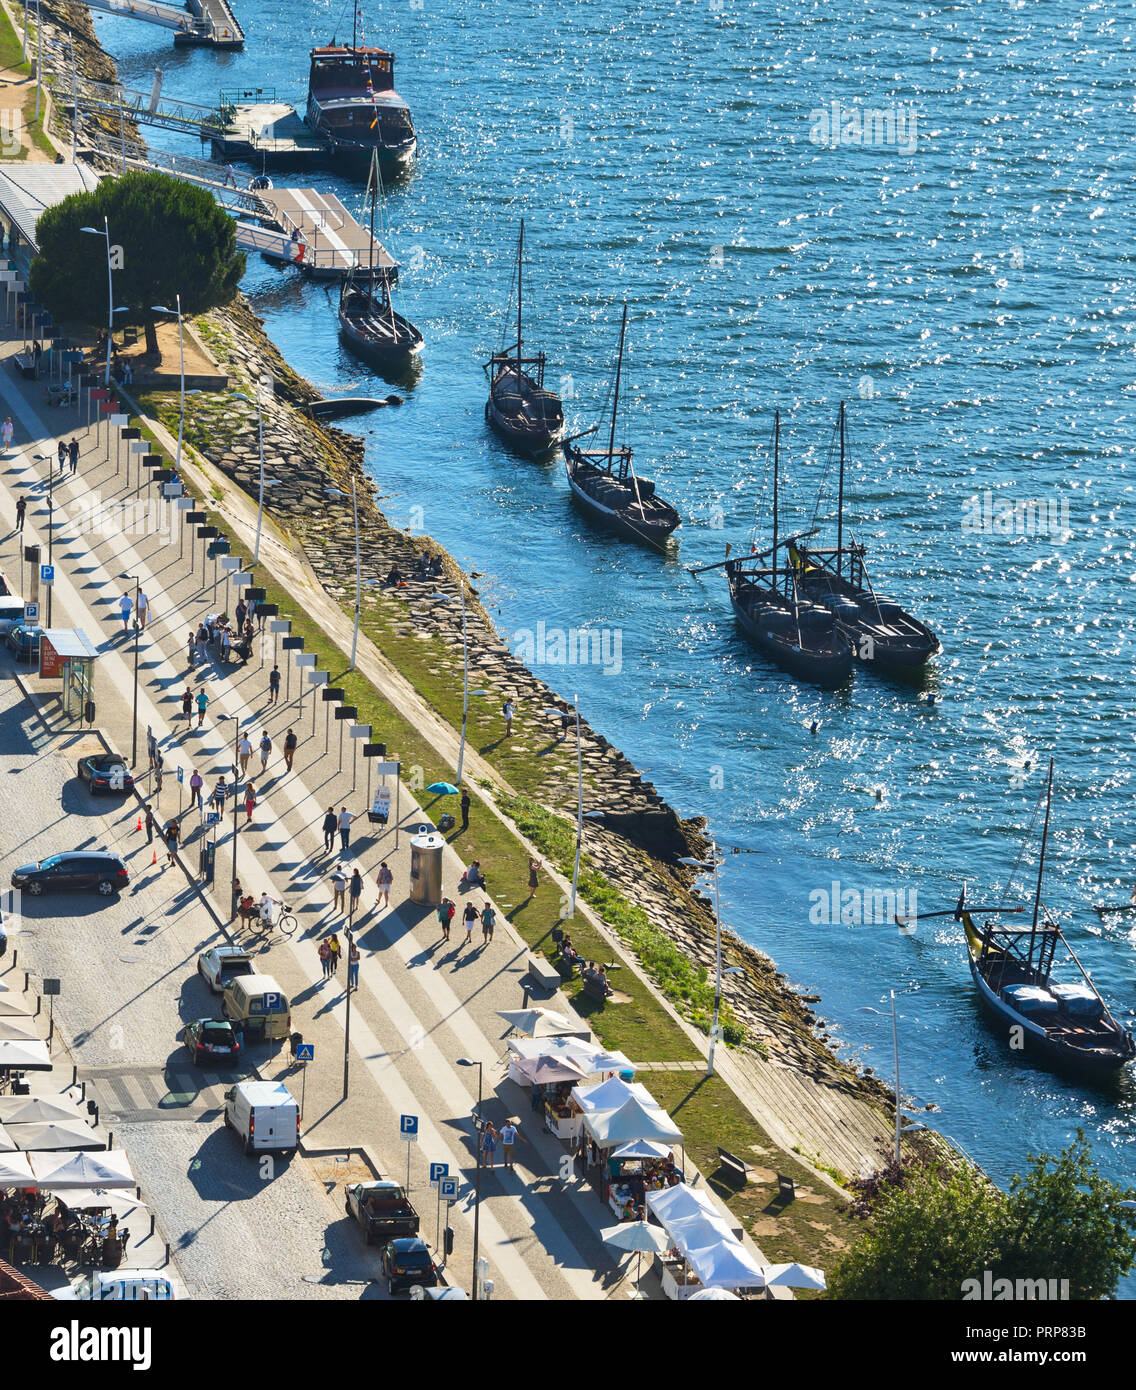 Aerial view of Vila Nova De Gaia with restaurants and traditional boats by embankment, Porto, Portugal - Stock Image